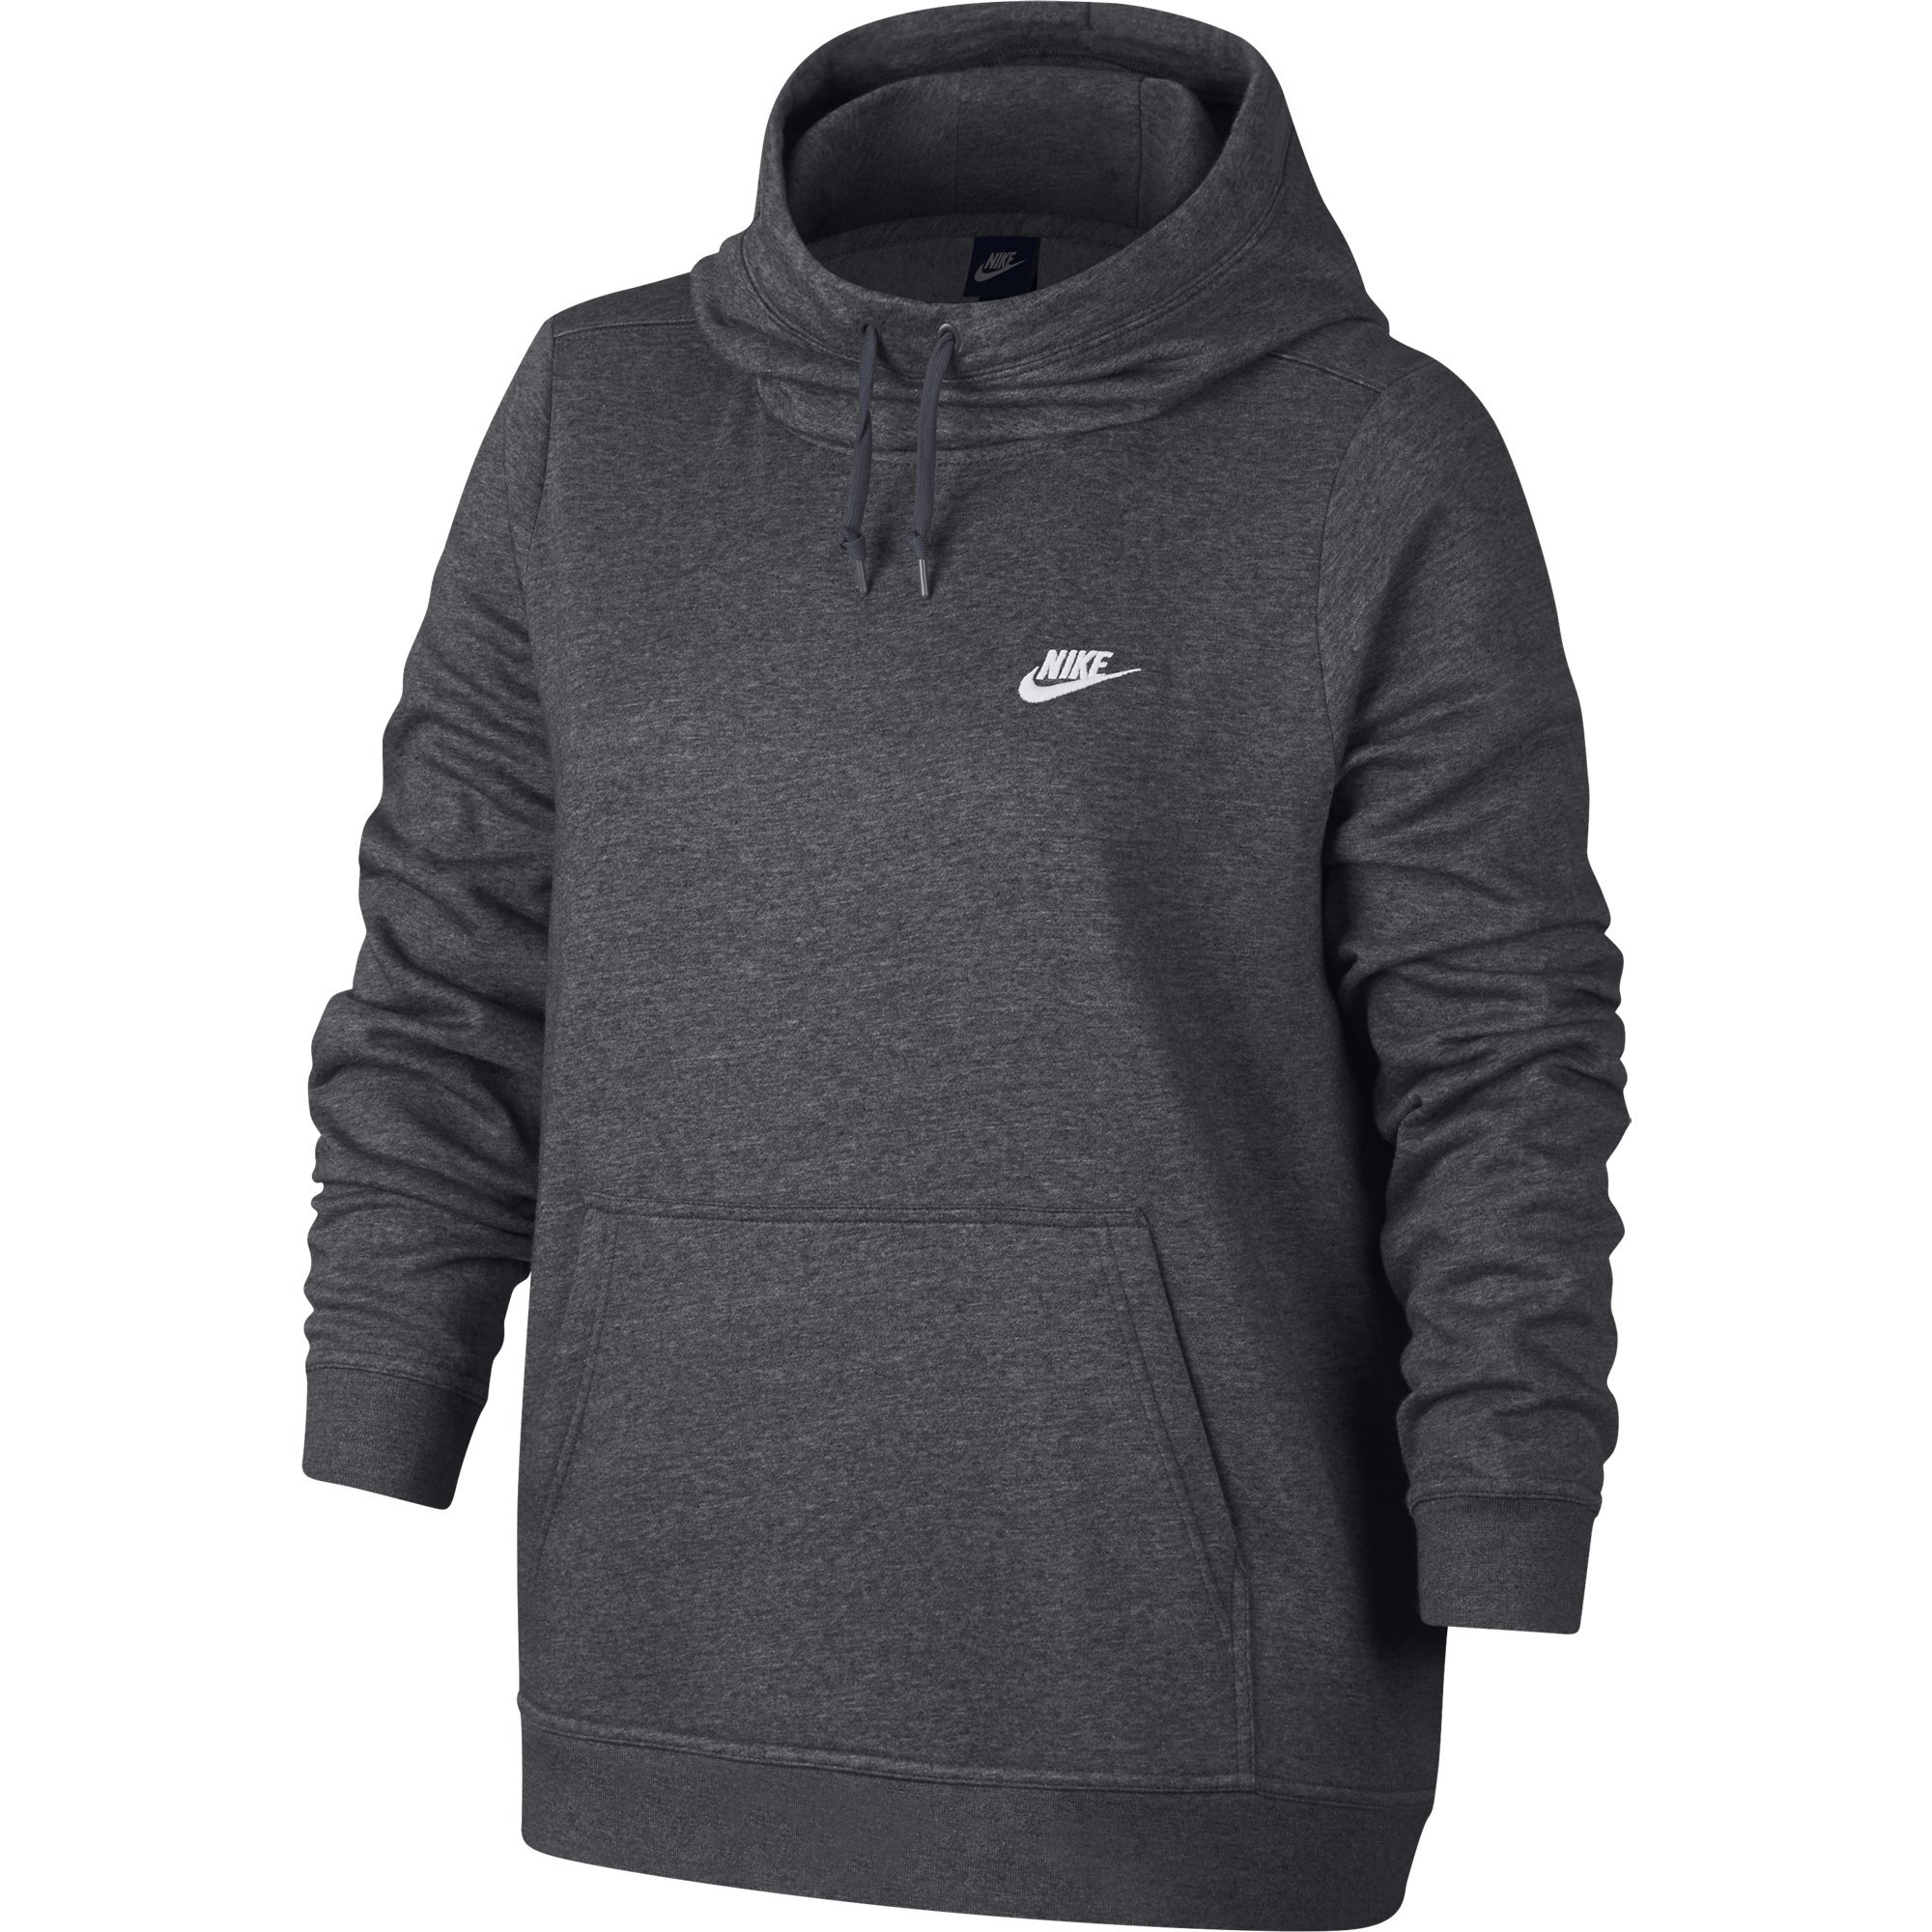 NIKE Sportswear Women's Plus Club Funnel-Neck Hoodie, Charcoal Heather/Charcoal Heather/White, 2X